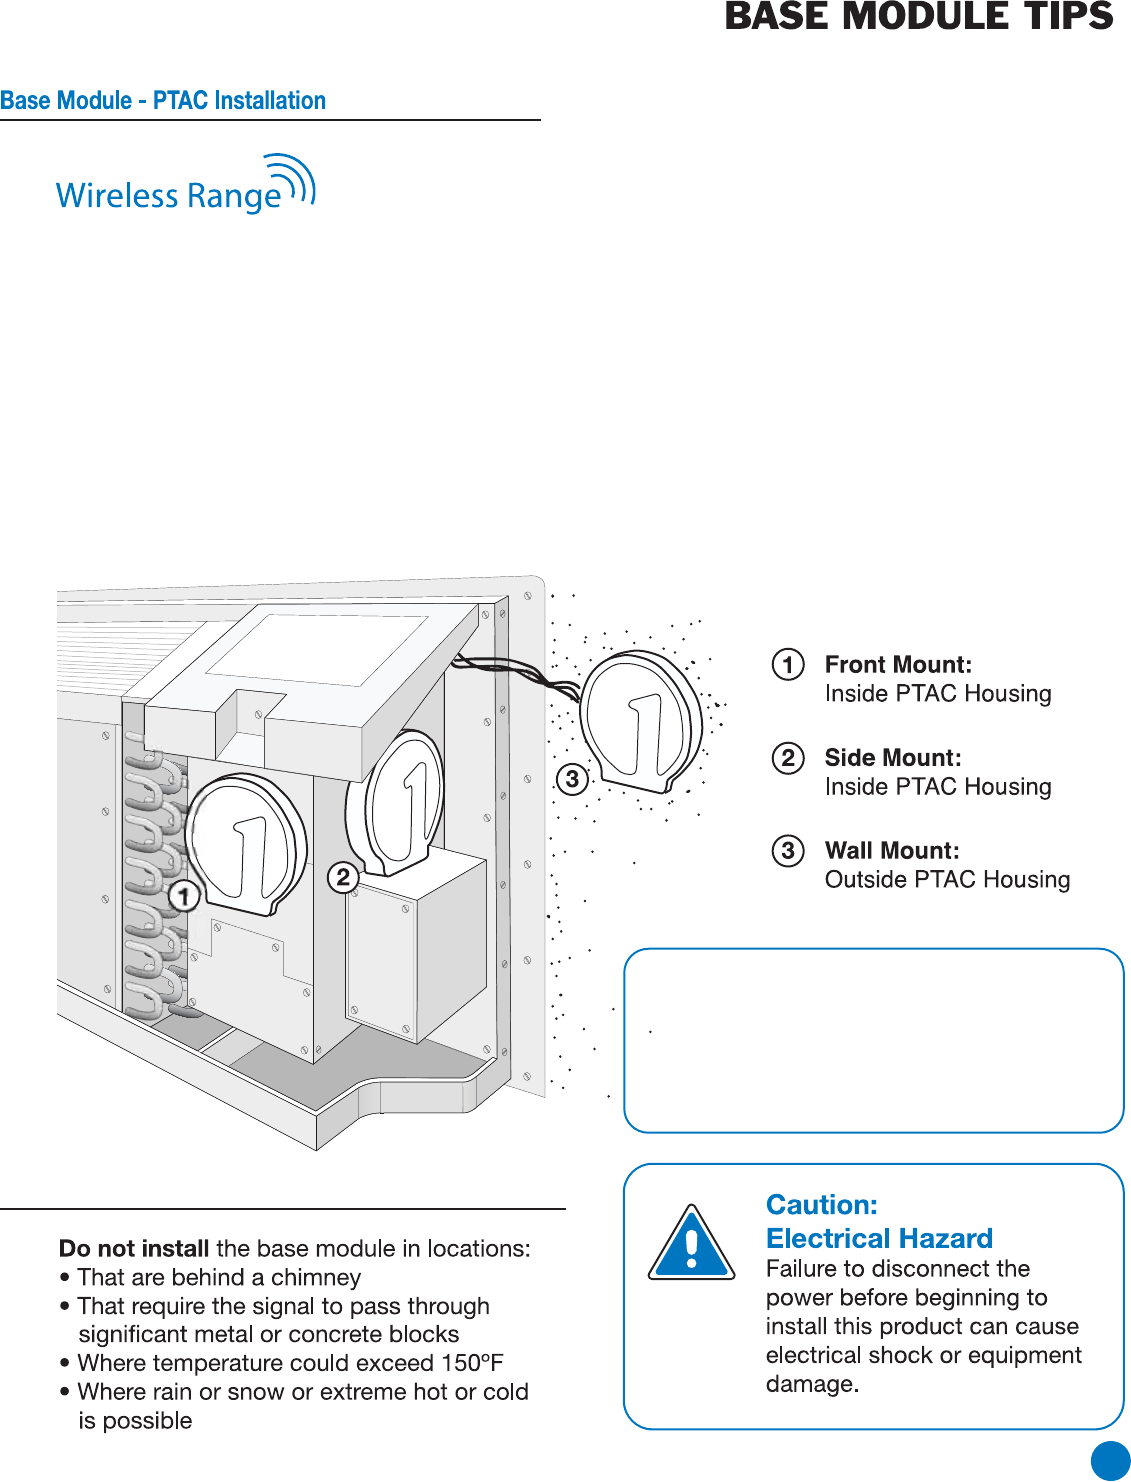 Page 5 Of Friedrich Thermostat Wrt1 User Guide Manualsonlinecom Ptac Wiring Diagram Range Between The And Base Module Is Up To 100 Feet With No Obstructions